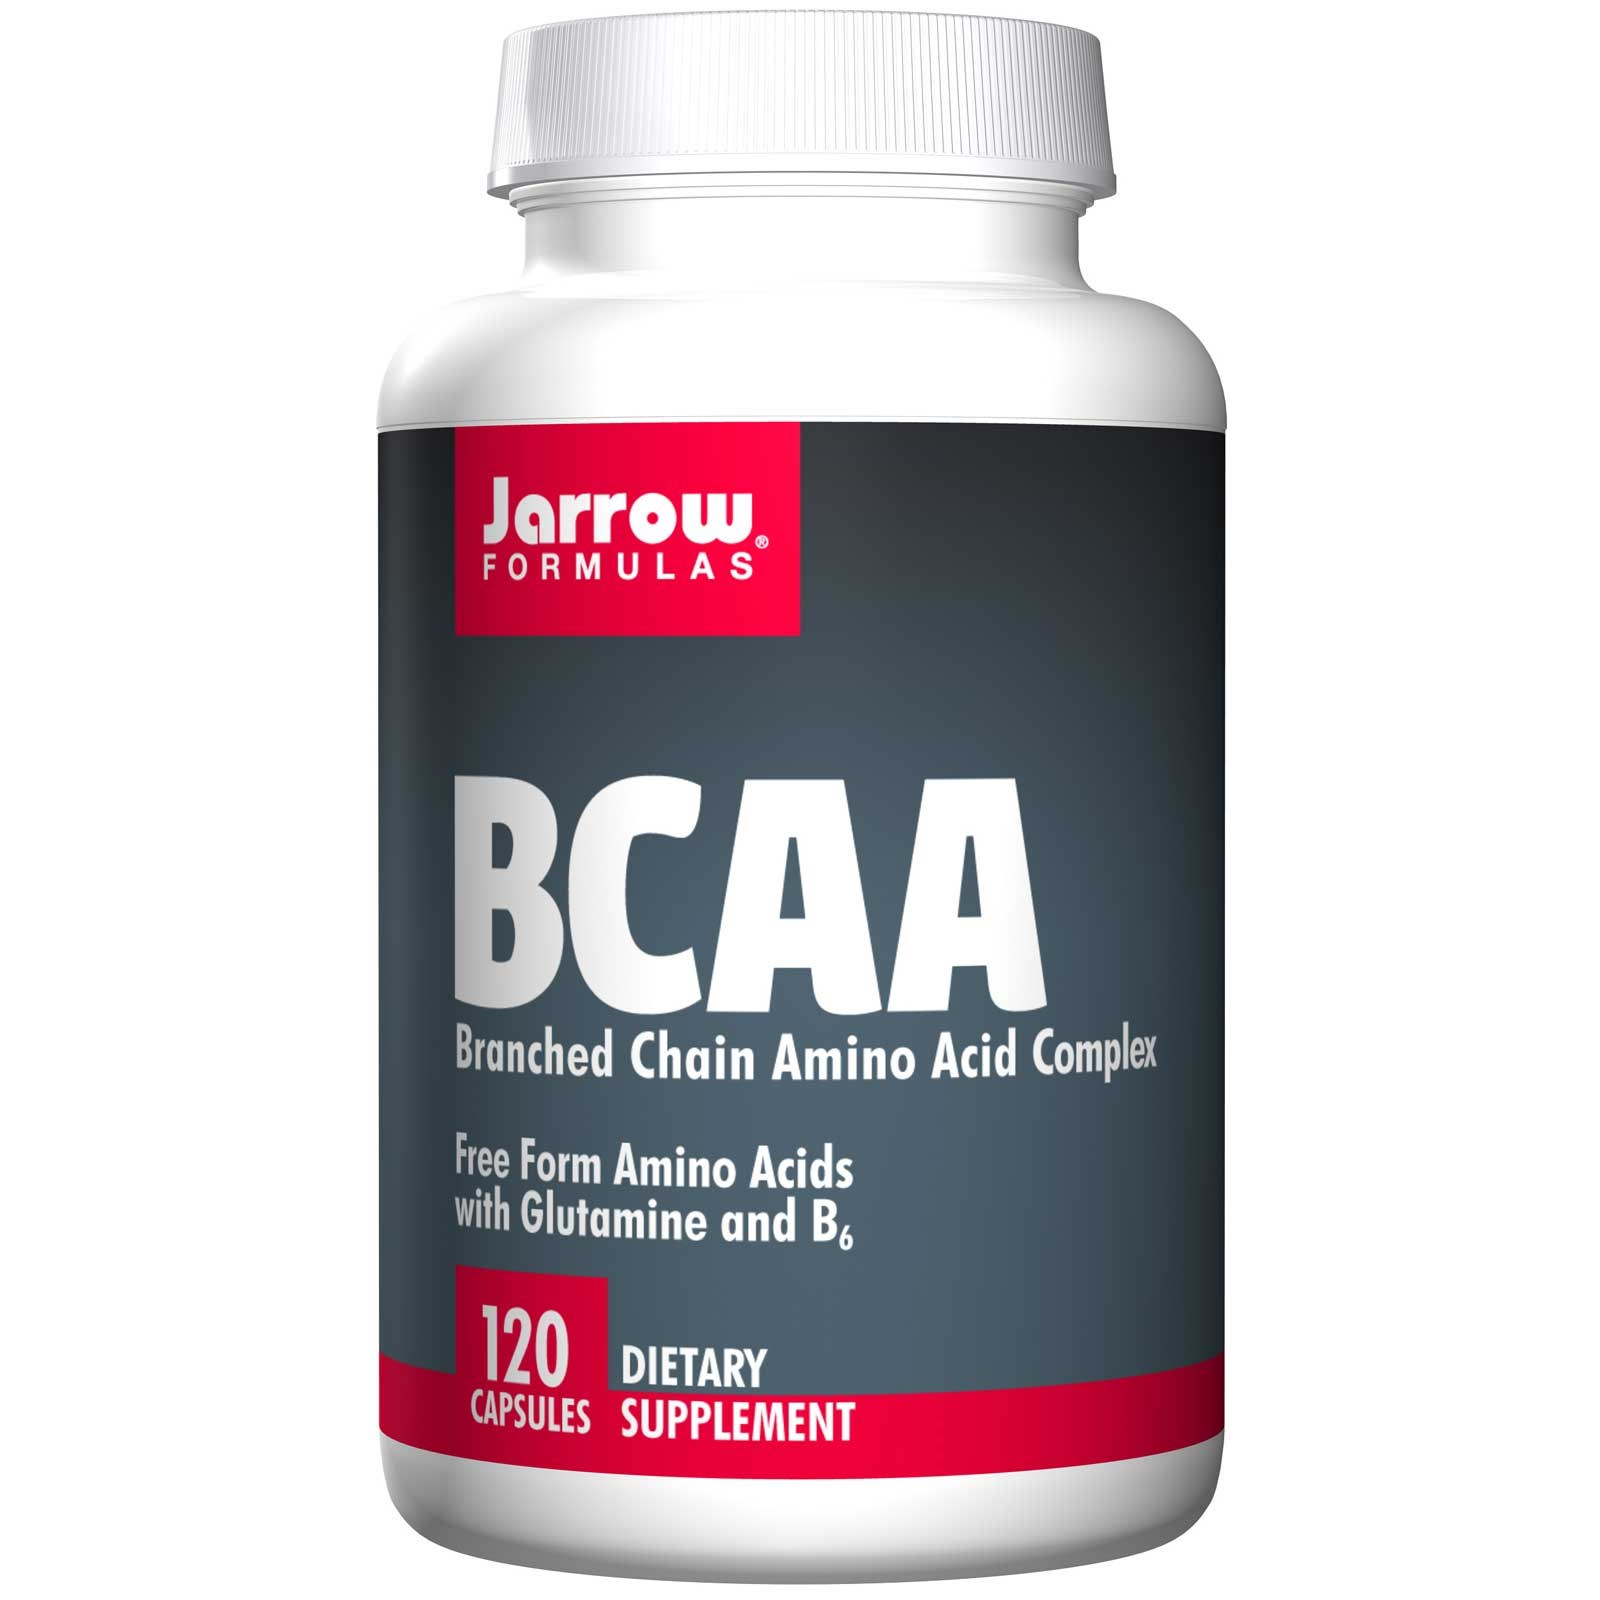 Image of BCAA, Branched Chain Amino Acid Complex (120 Capsules) - Jarrow Formulas 0790011150534